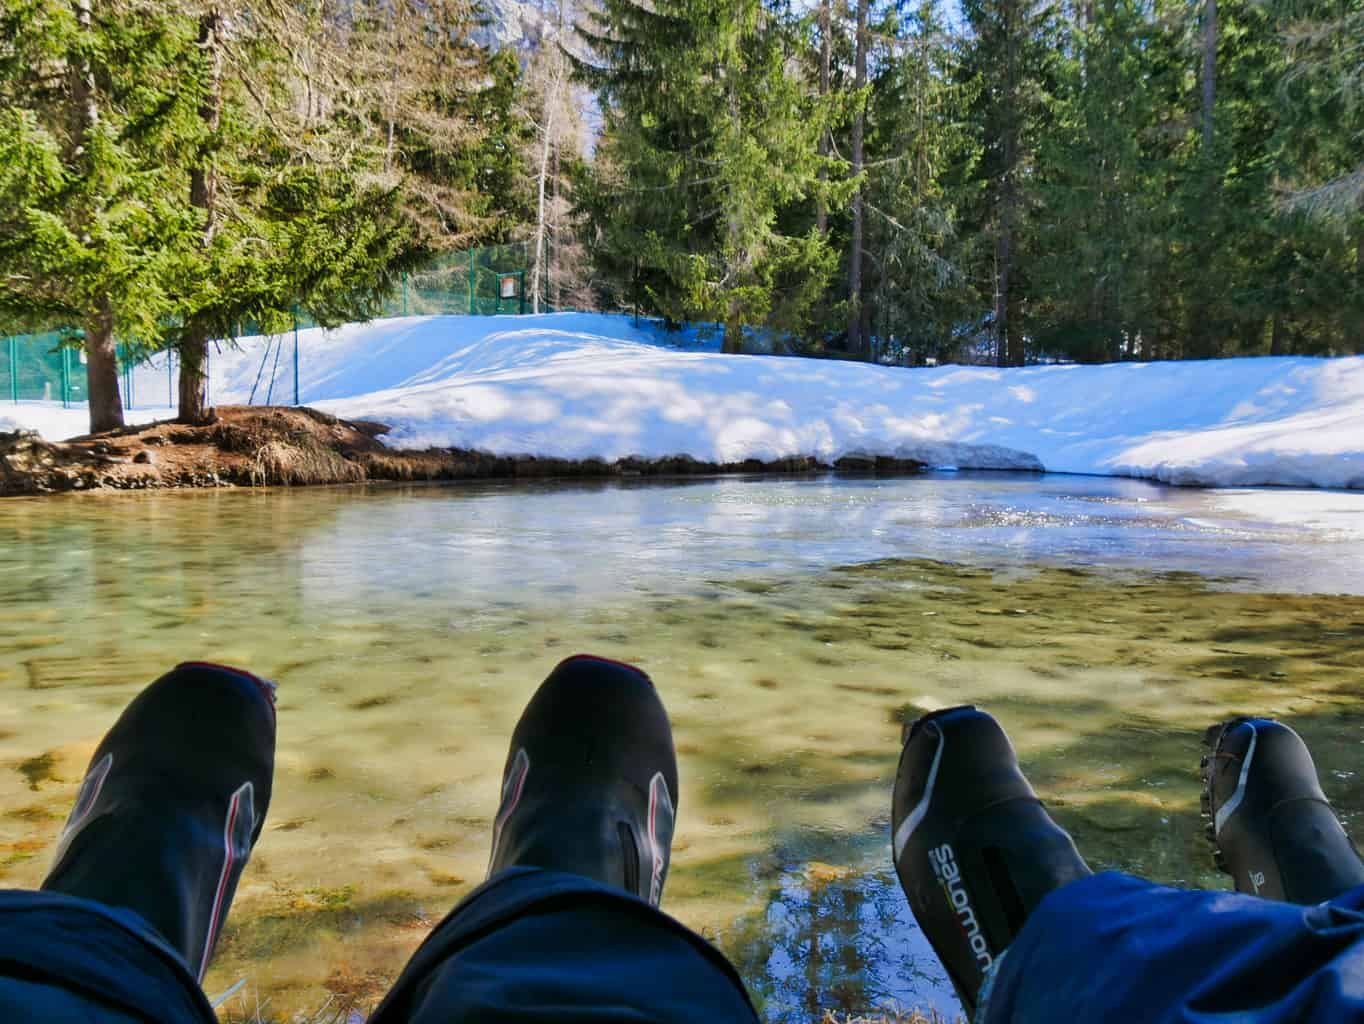 Two sets of feet up looking out over clear lake with snow and trees surrounding it